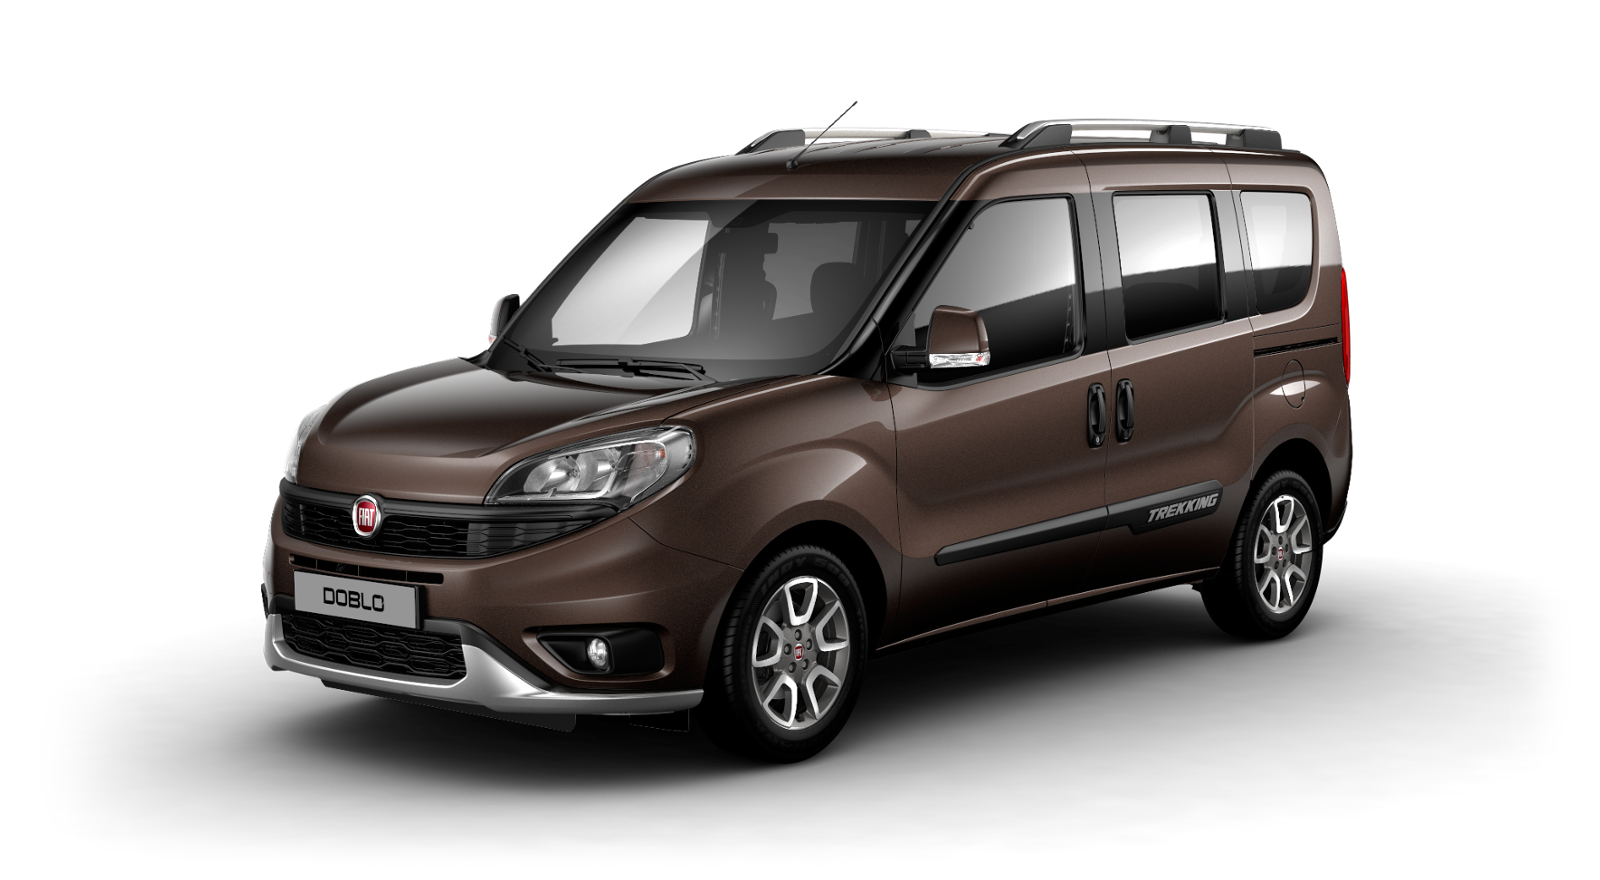 fiat doblo trekking 4x4 automobili image idea. Black Bedroom Furniture Sets. Home Design Ideas